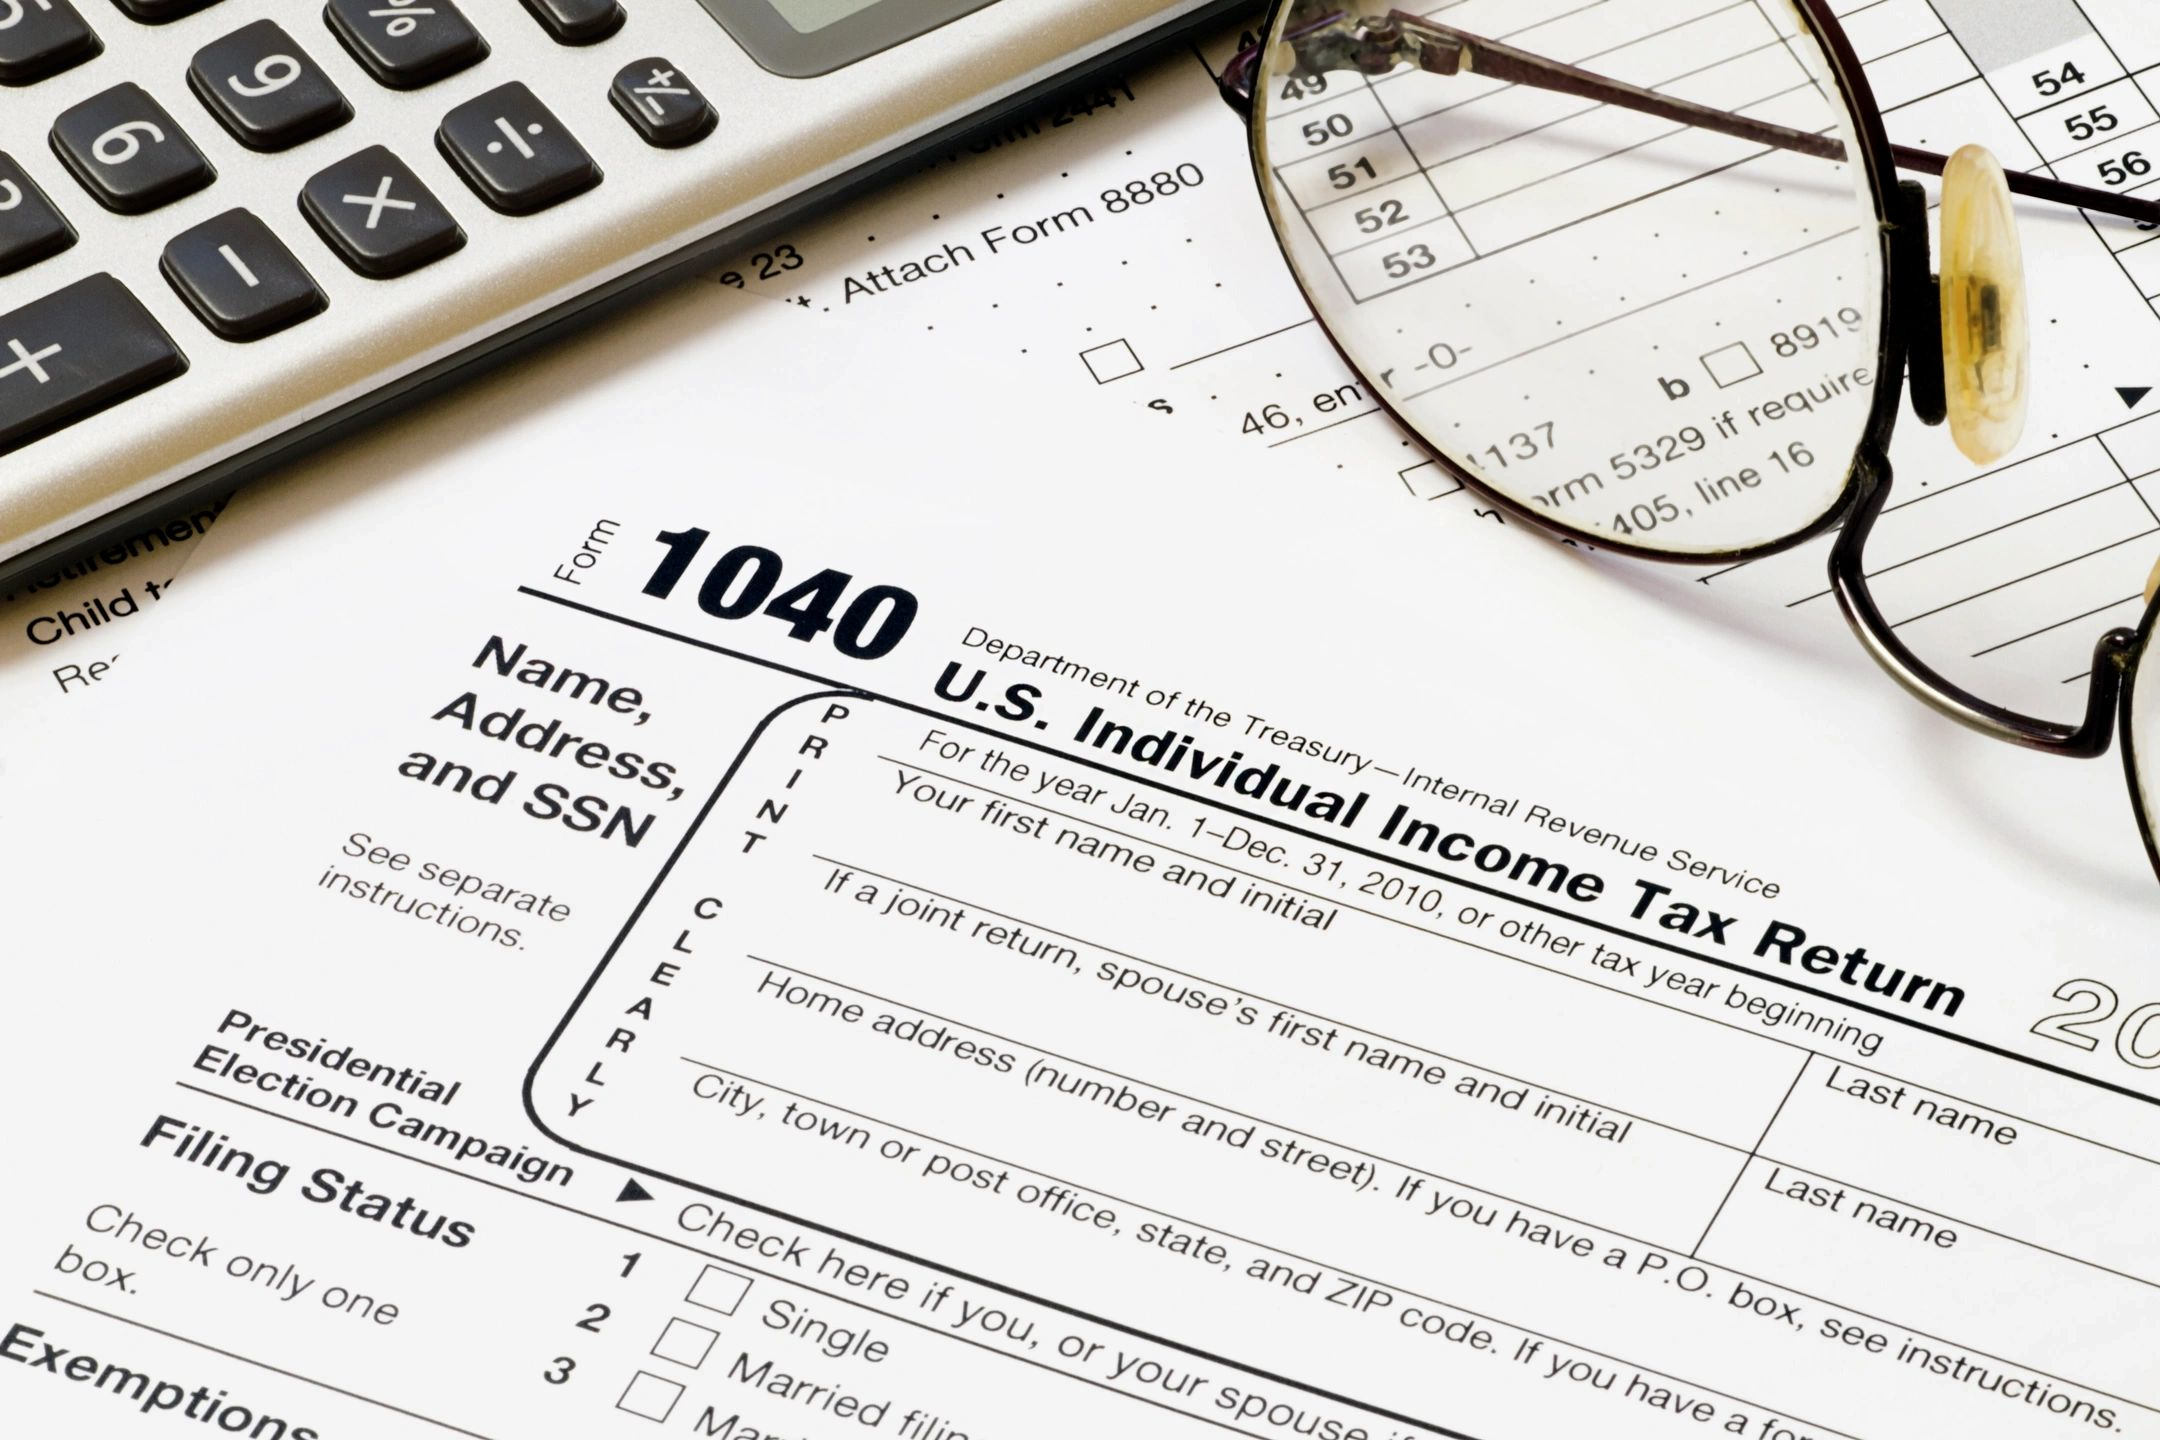 Picture of Form 1040 U.S. Individual; Tax service, Tax Preparer, Tax Practitioner, Virtual Tax Office, Online Tax Service, Online Tax Office Income Tax Return and eyeglasses for reading tax preparation documents.